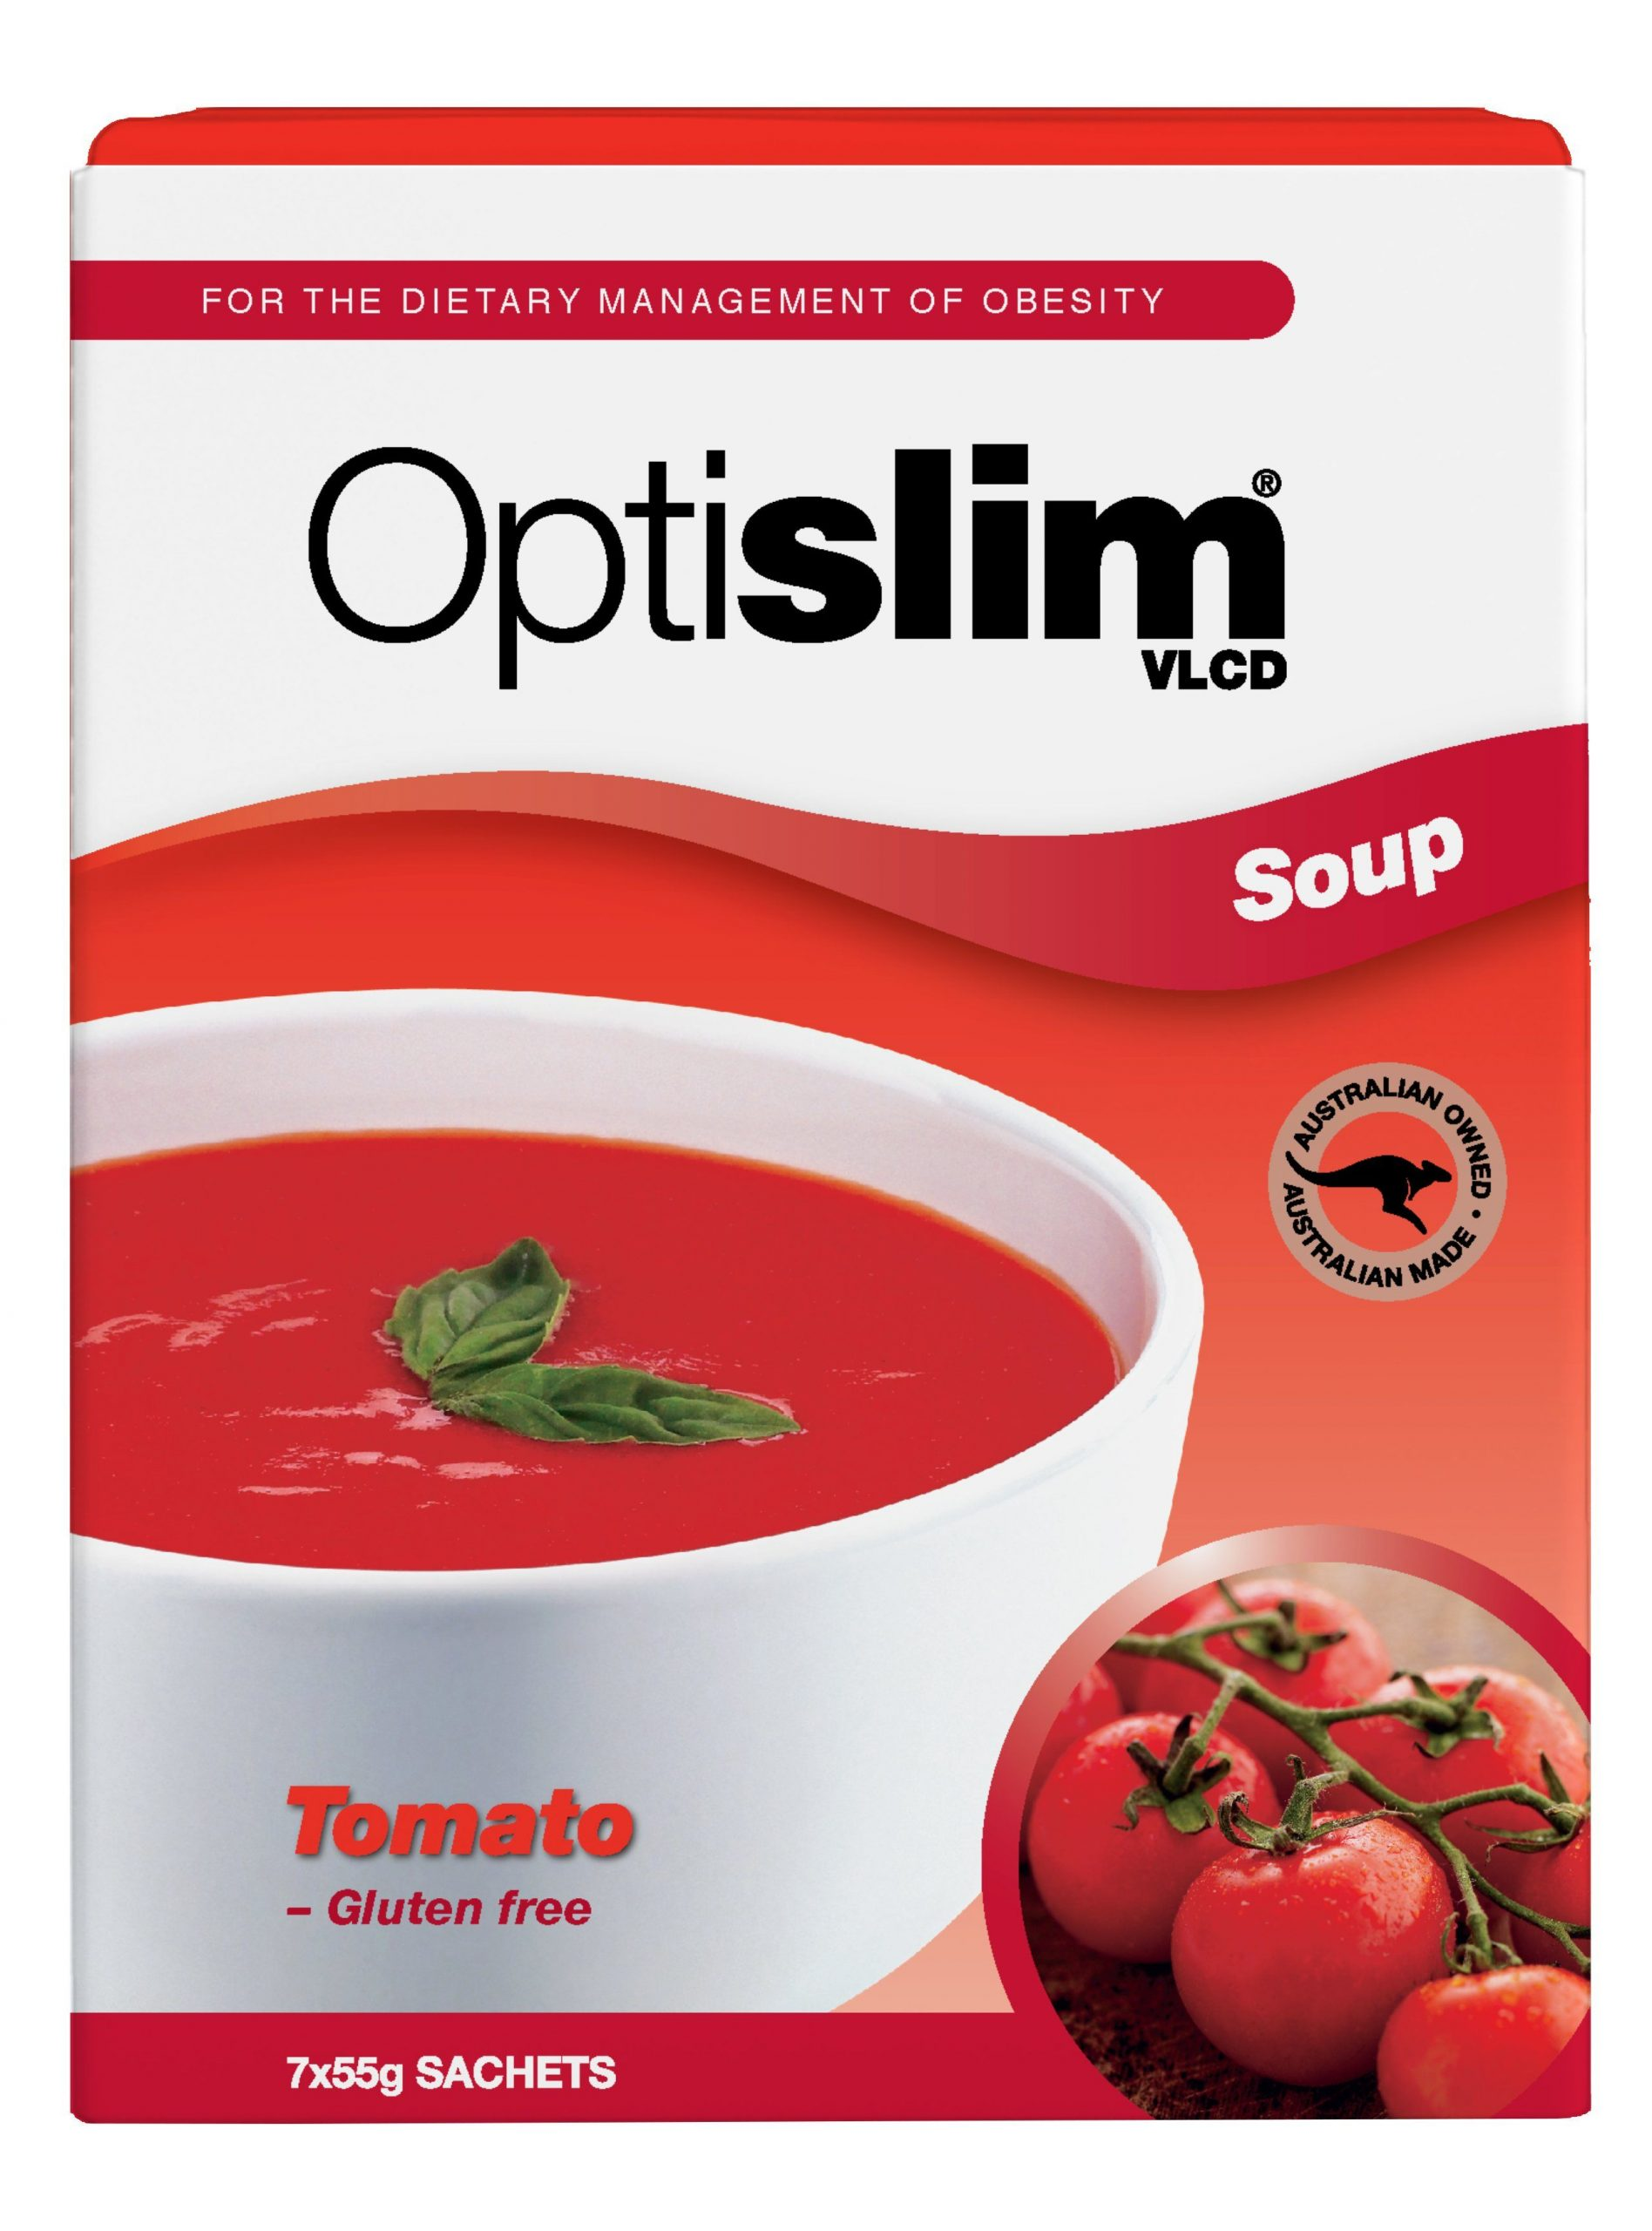 Optislim VLCD Soup Tomato (7x55g) Weight Loss OptiSlim